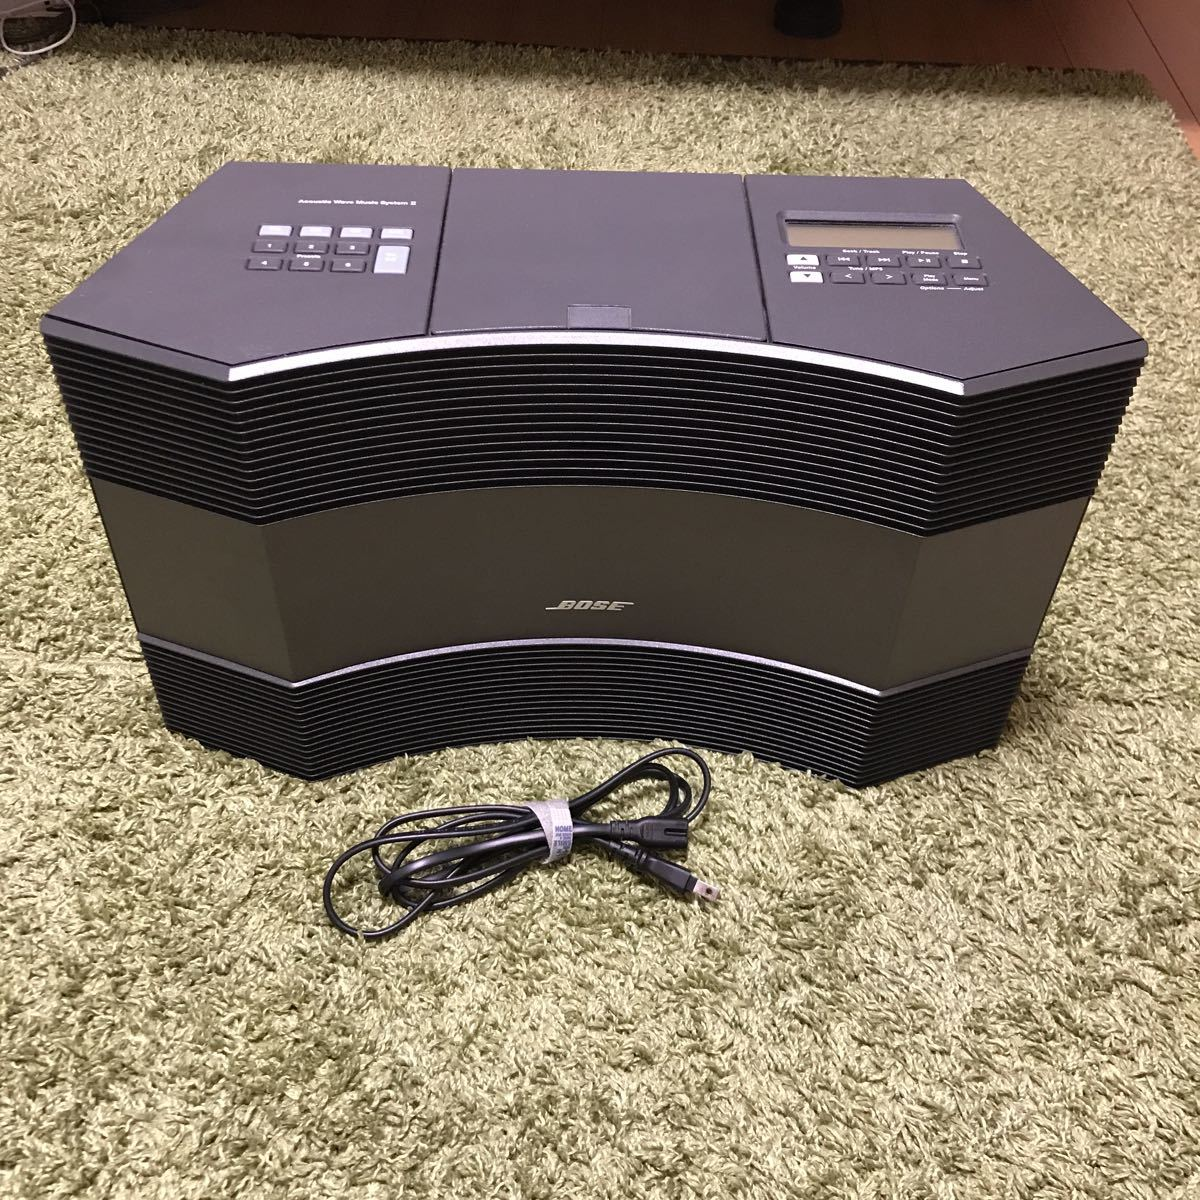 BOSE Acoustic Wave Music System Ⅱ